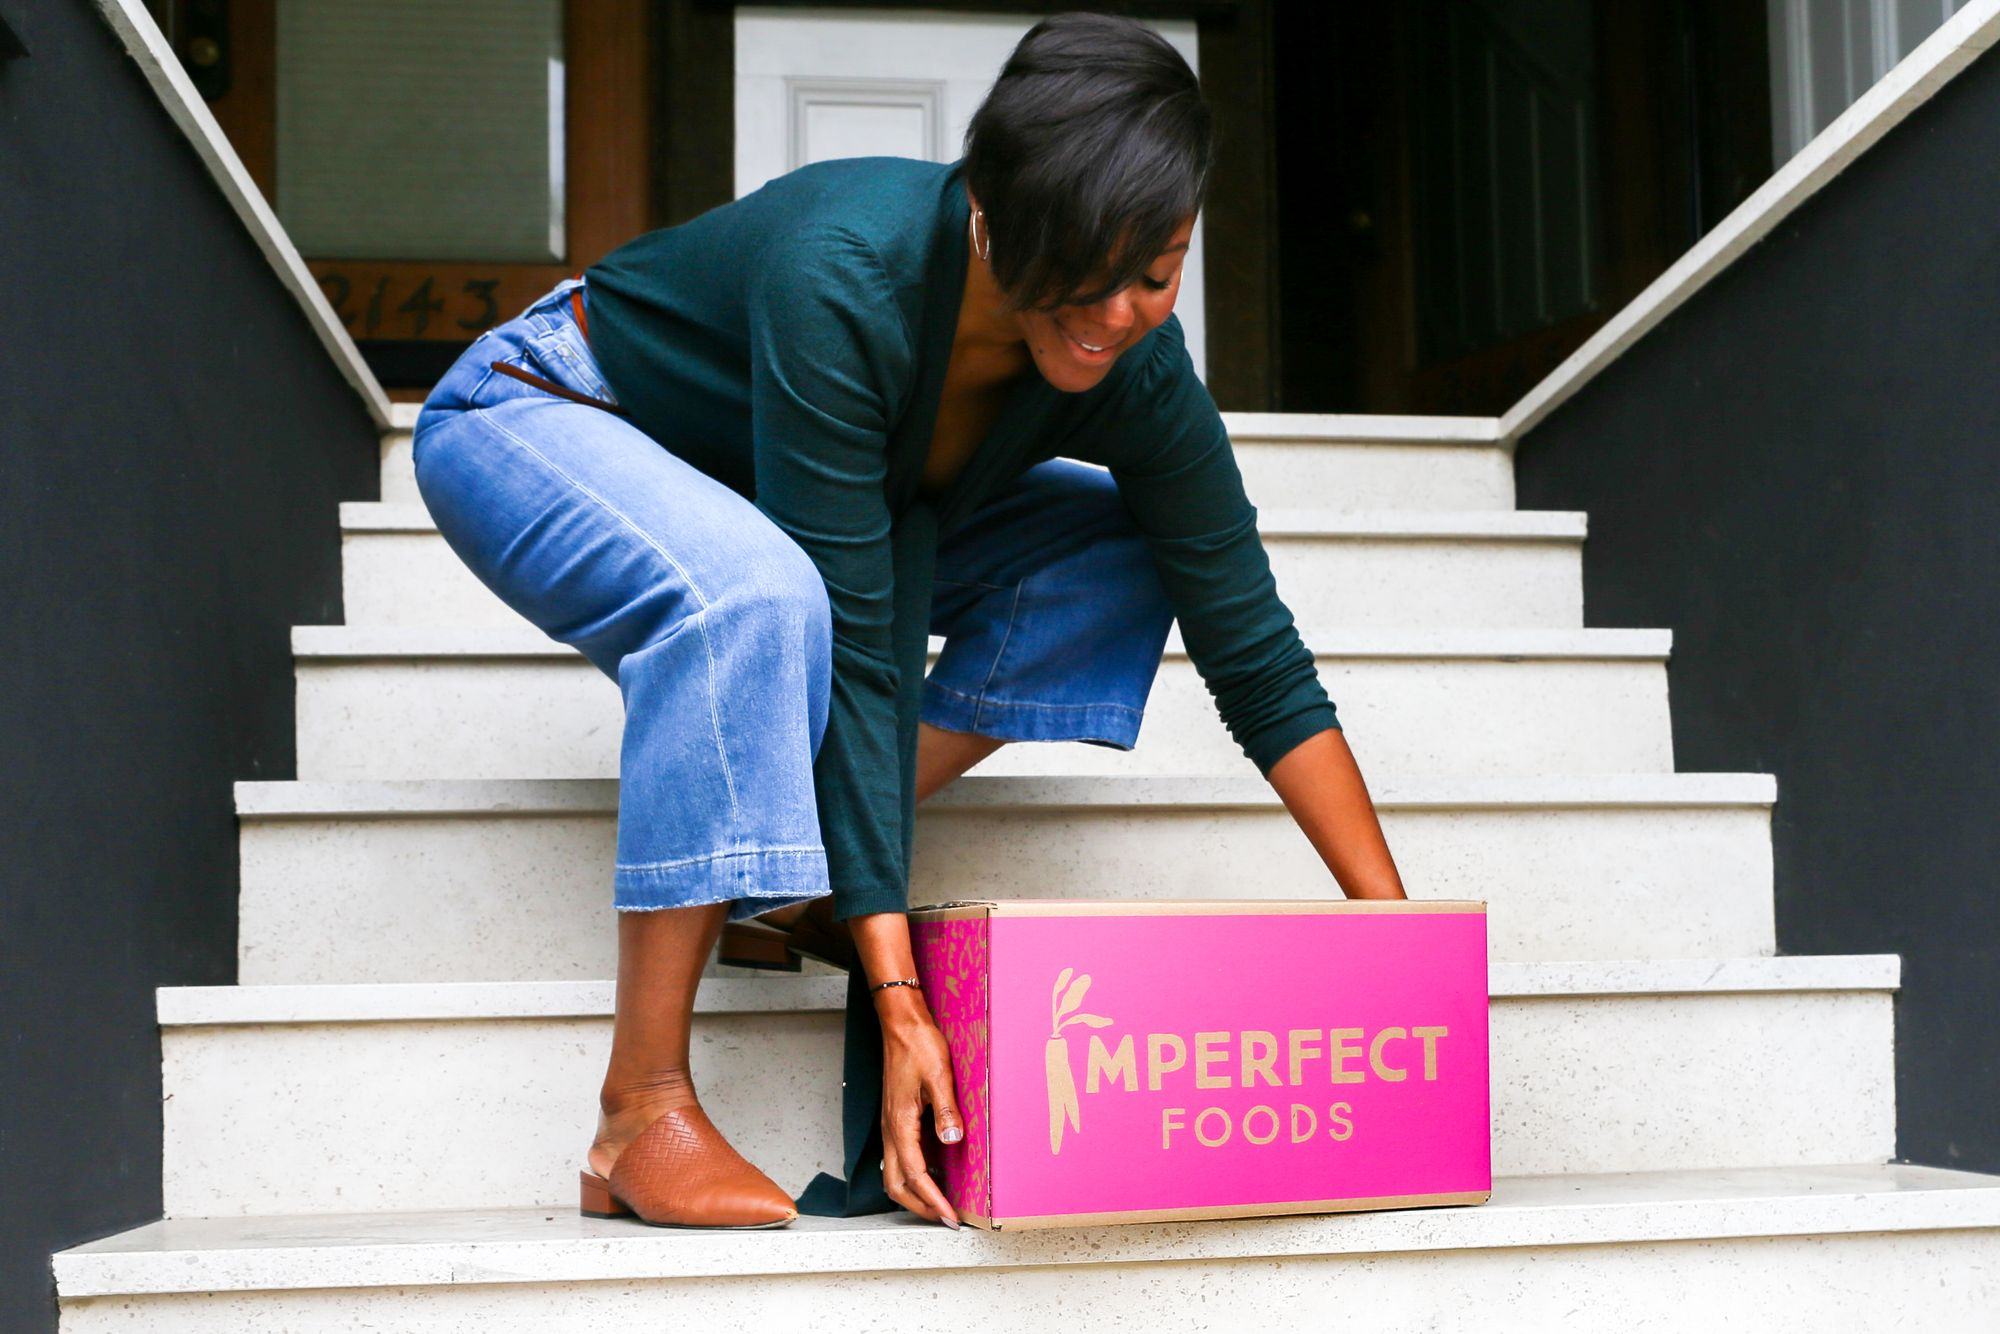 Imperfect Foods and Onfleet partner to delivery weekly groceries